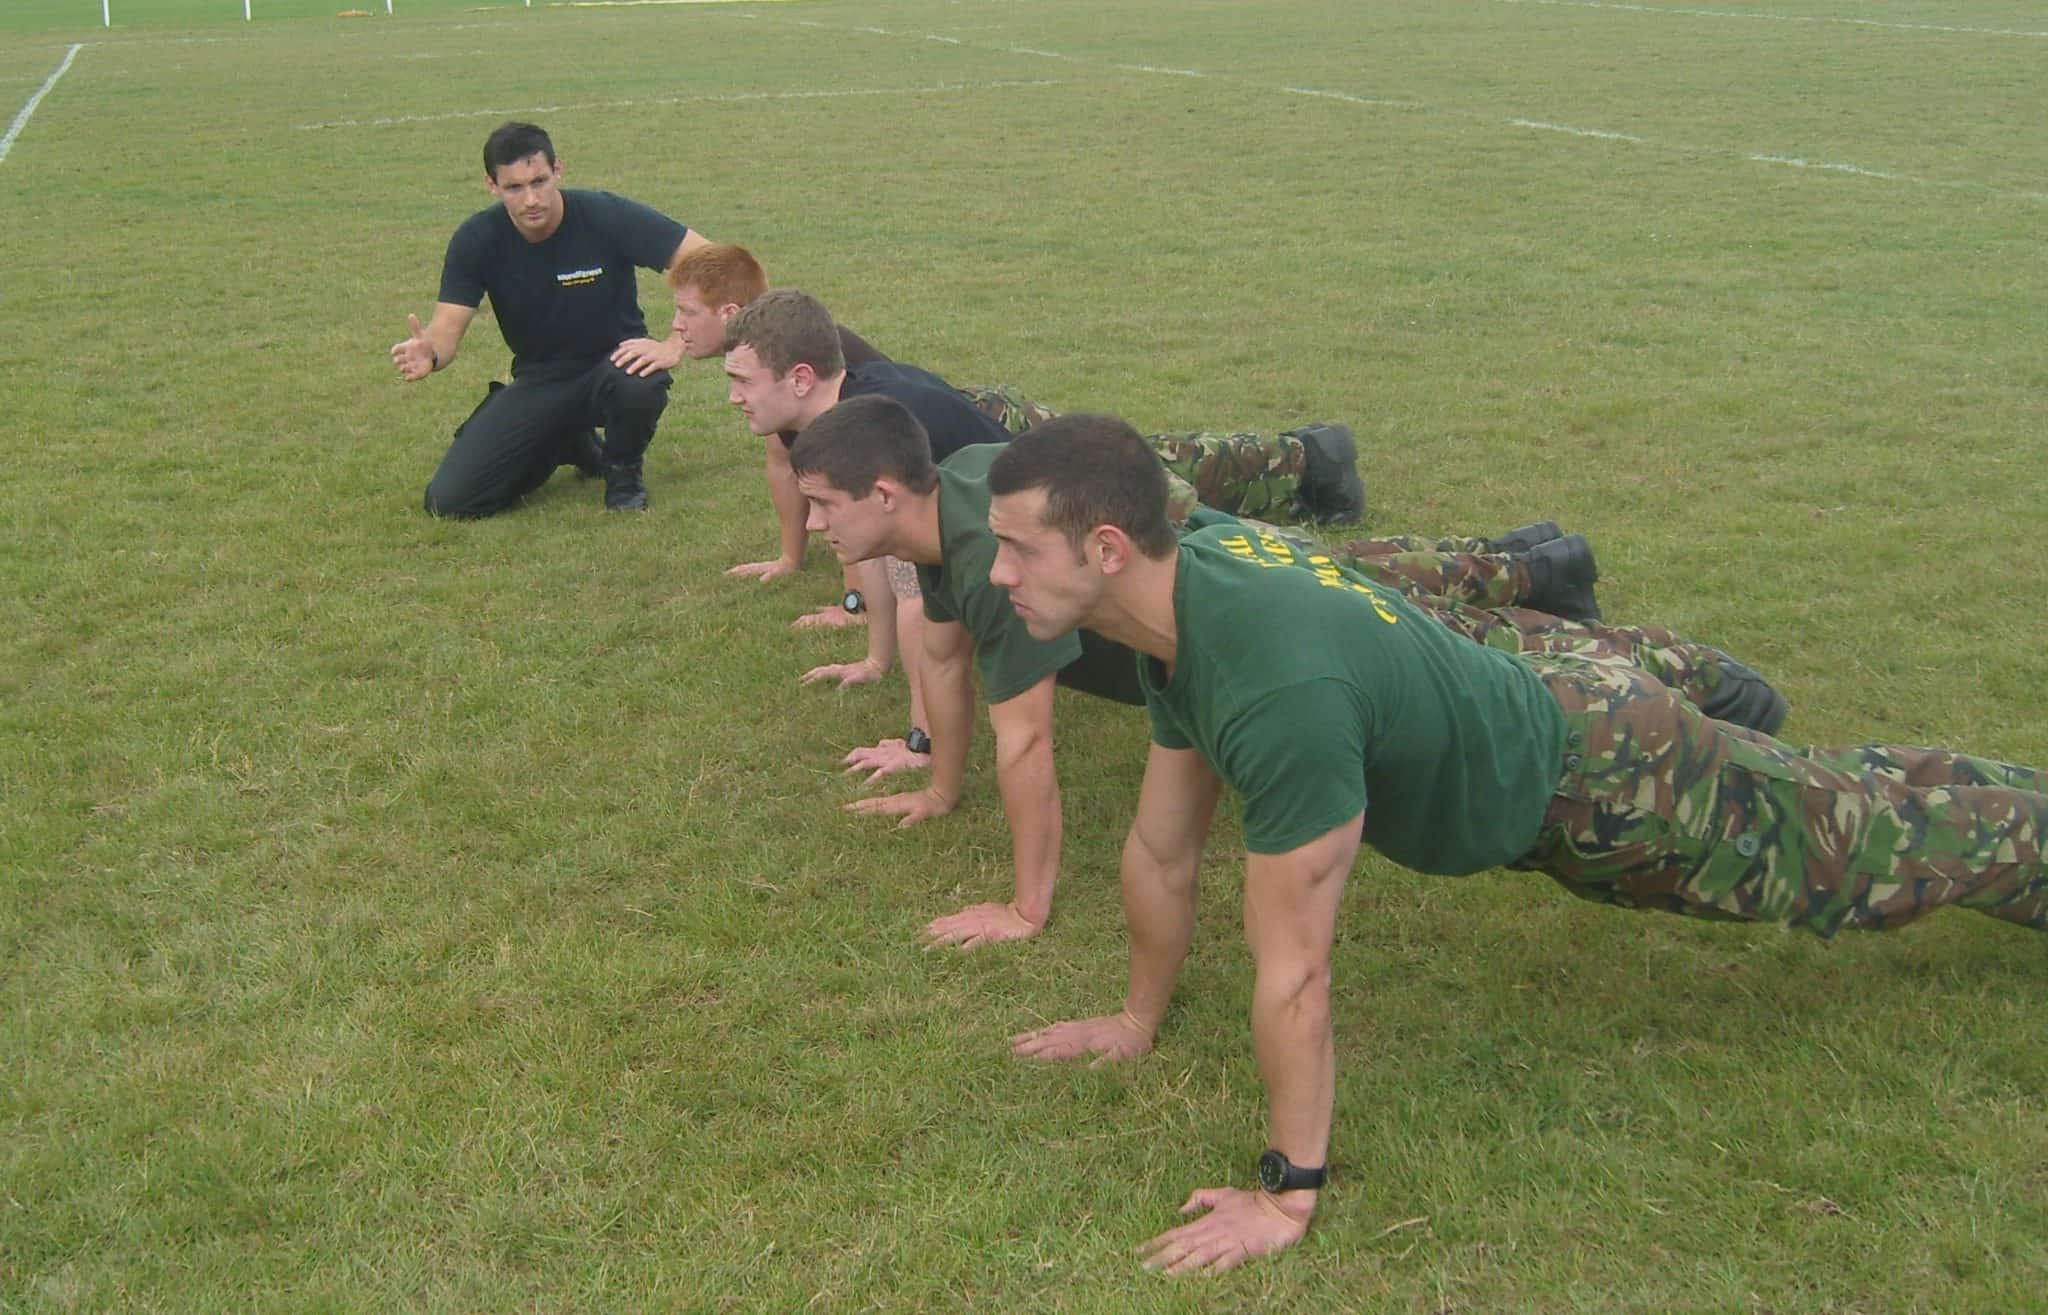 bootcamp workout ideas